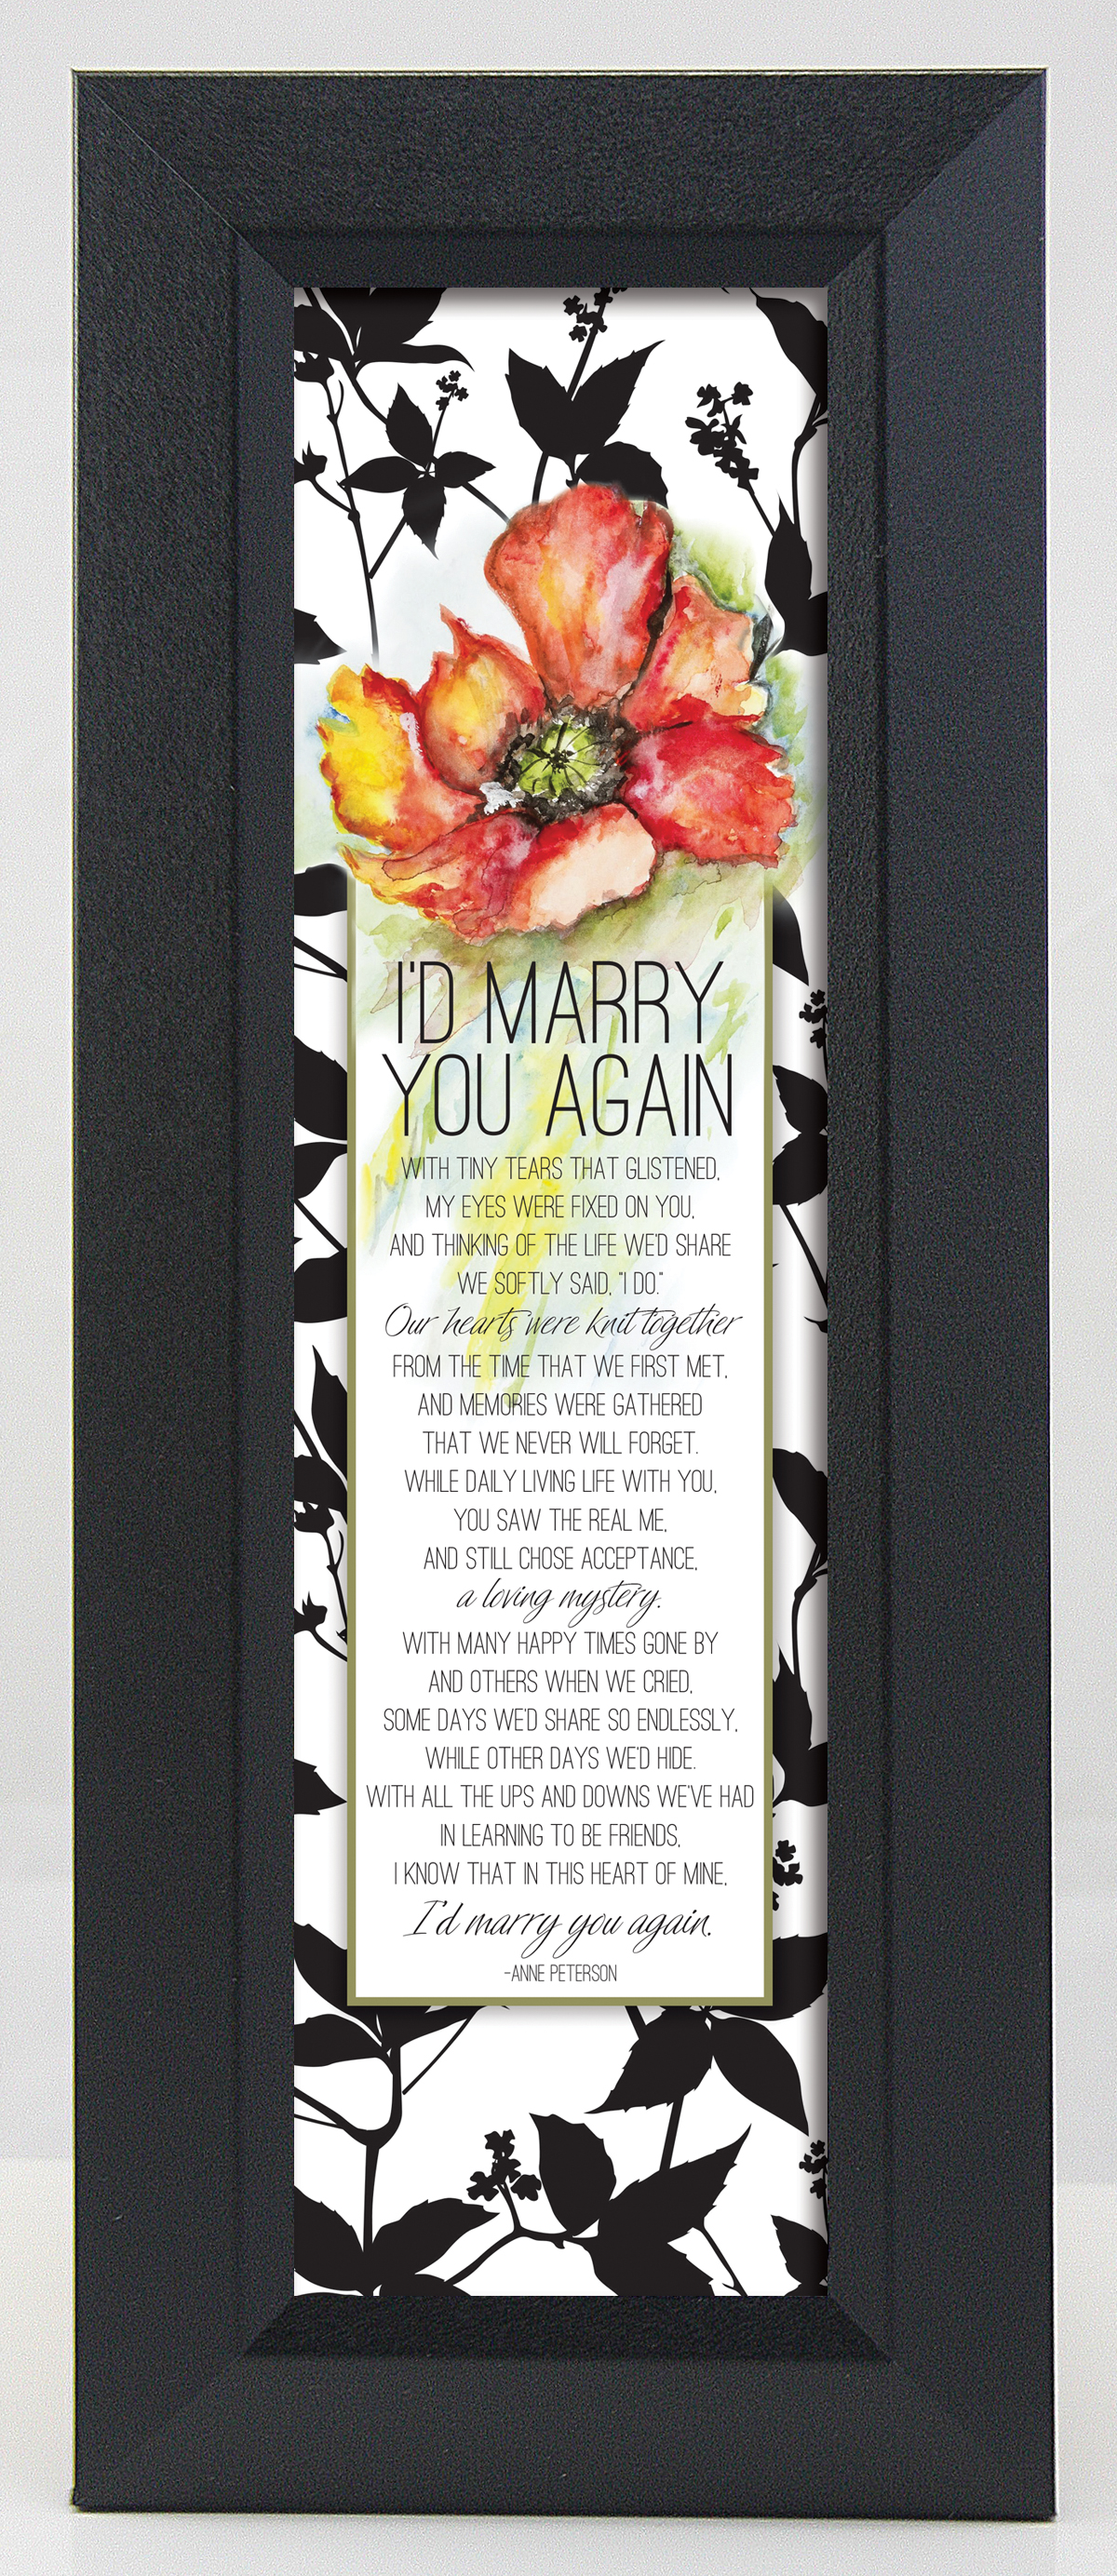 I%27d Marry You Again Floral Wall Plaque framed picture, inspirational message, home decor, wall decor, framed art, words of grace, 9013